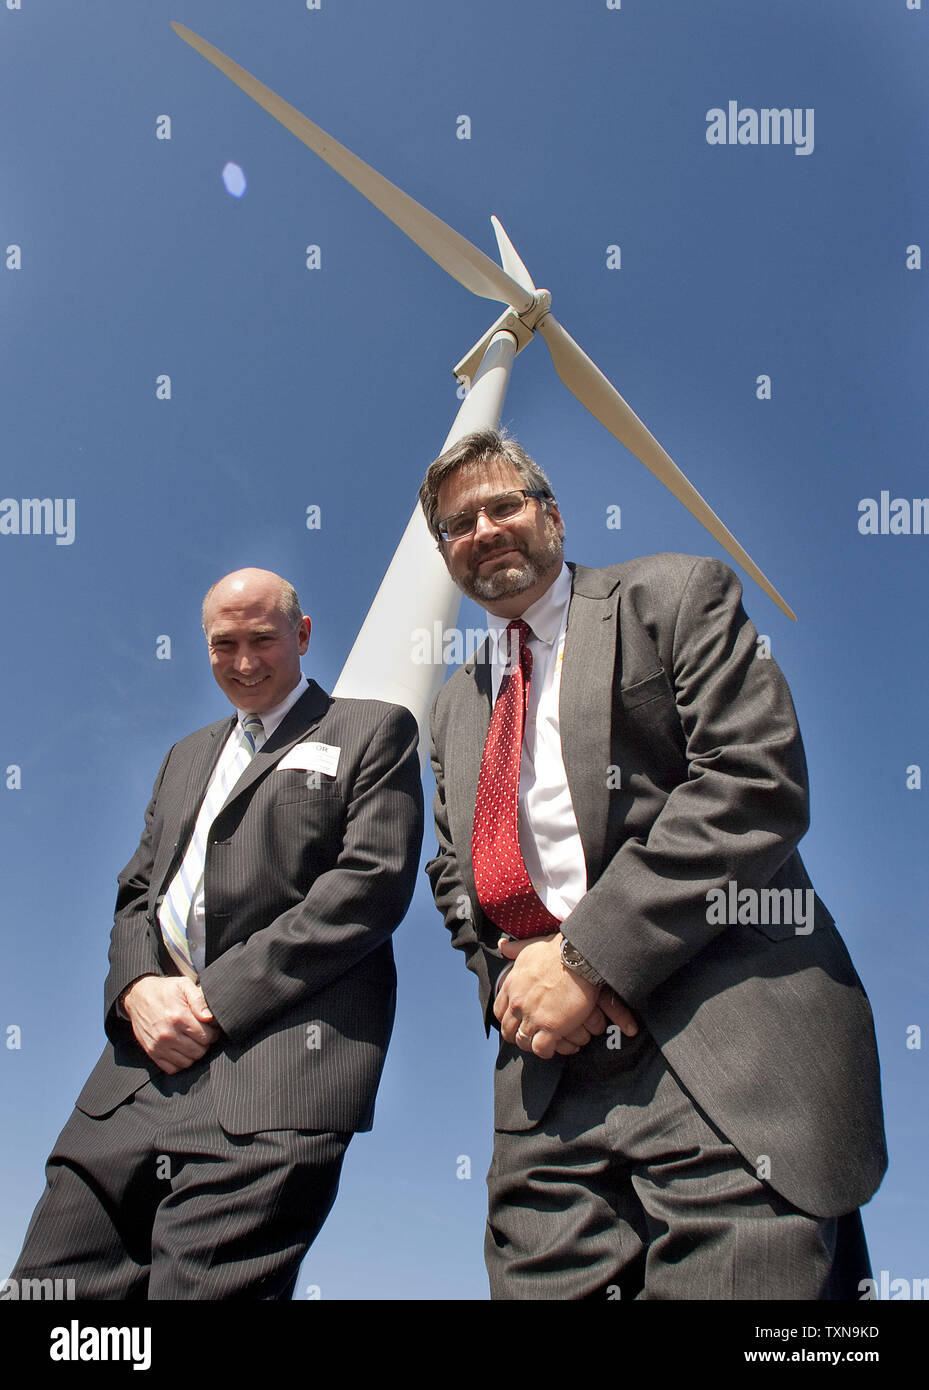 General Electric (ge) Wind Turbine Stock Photos & General Electric